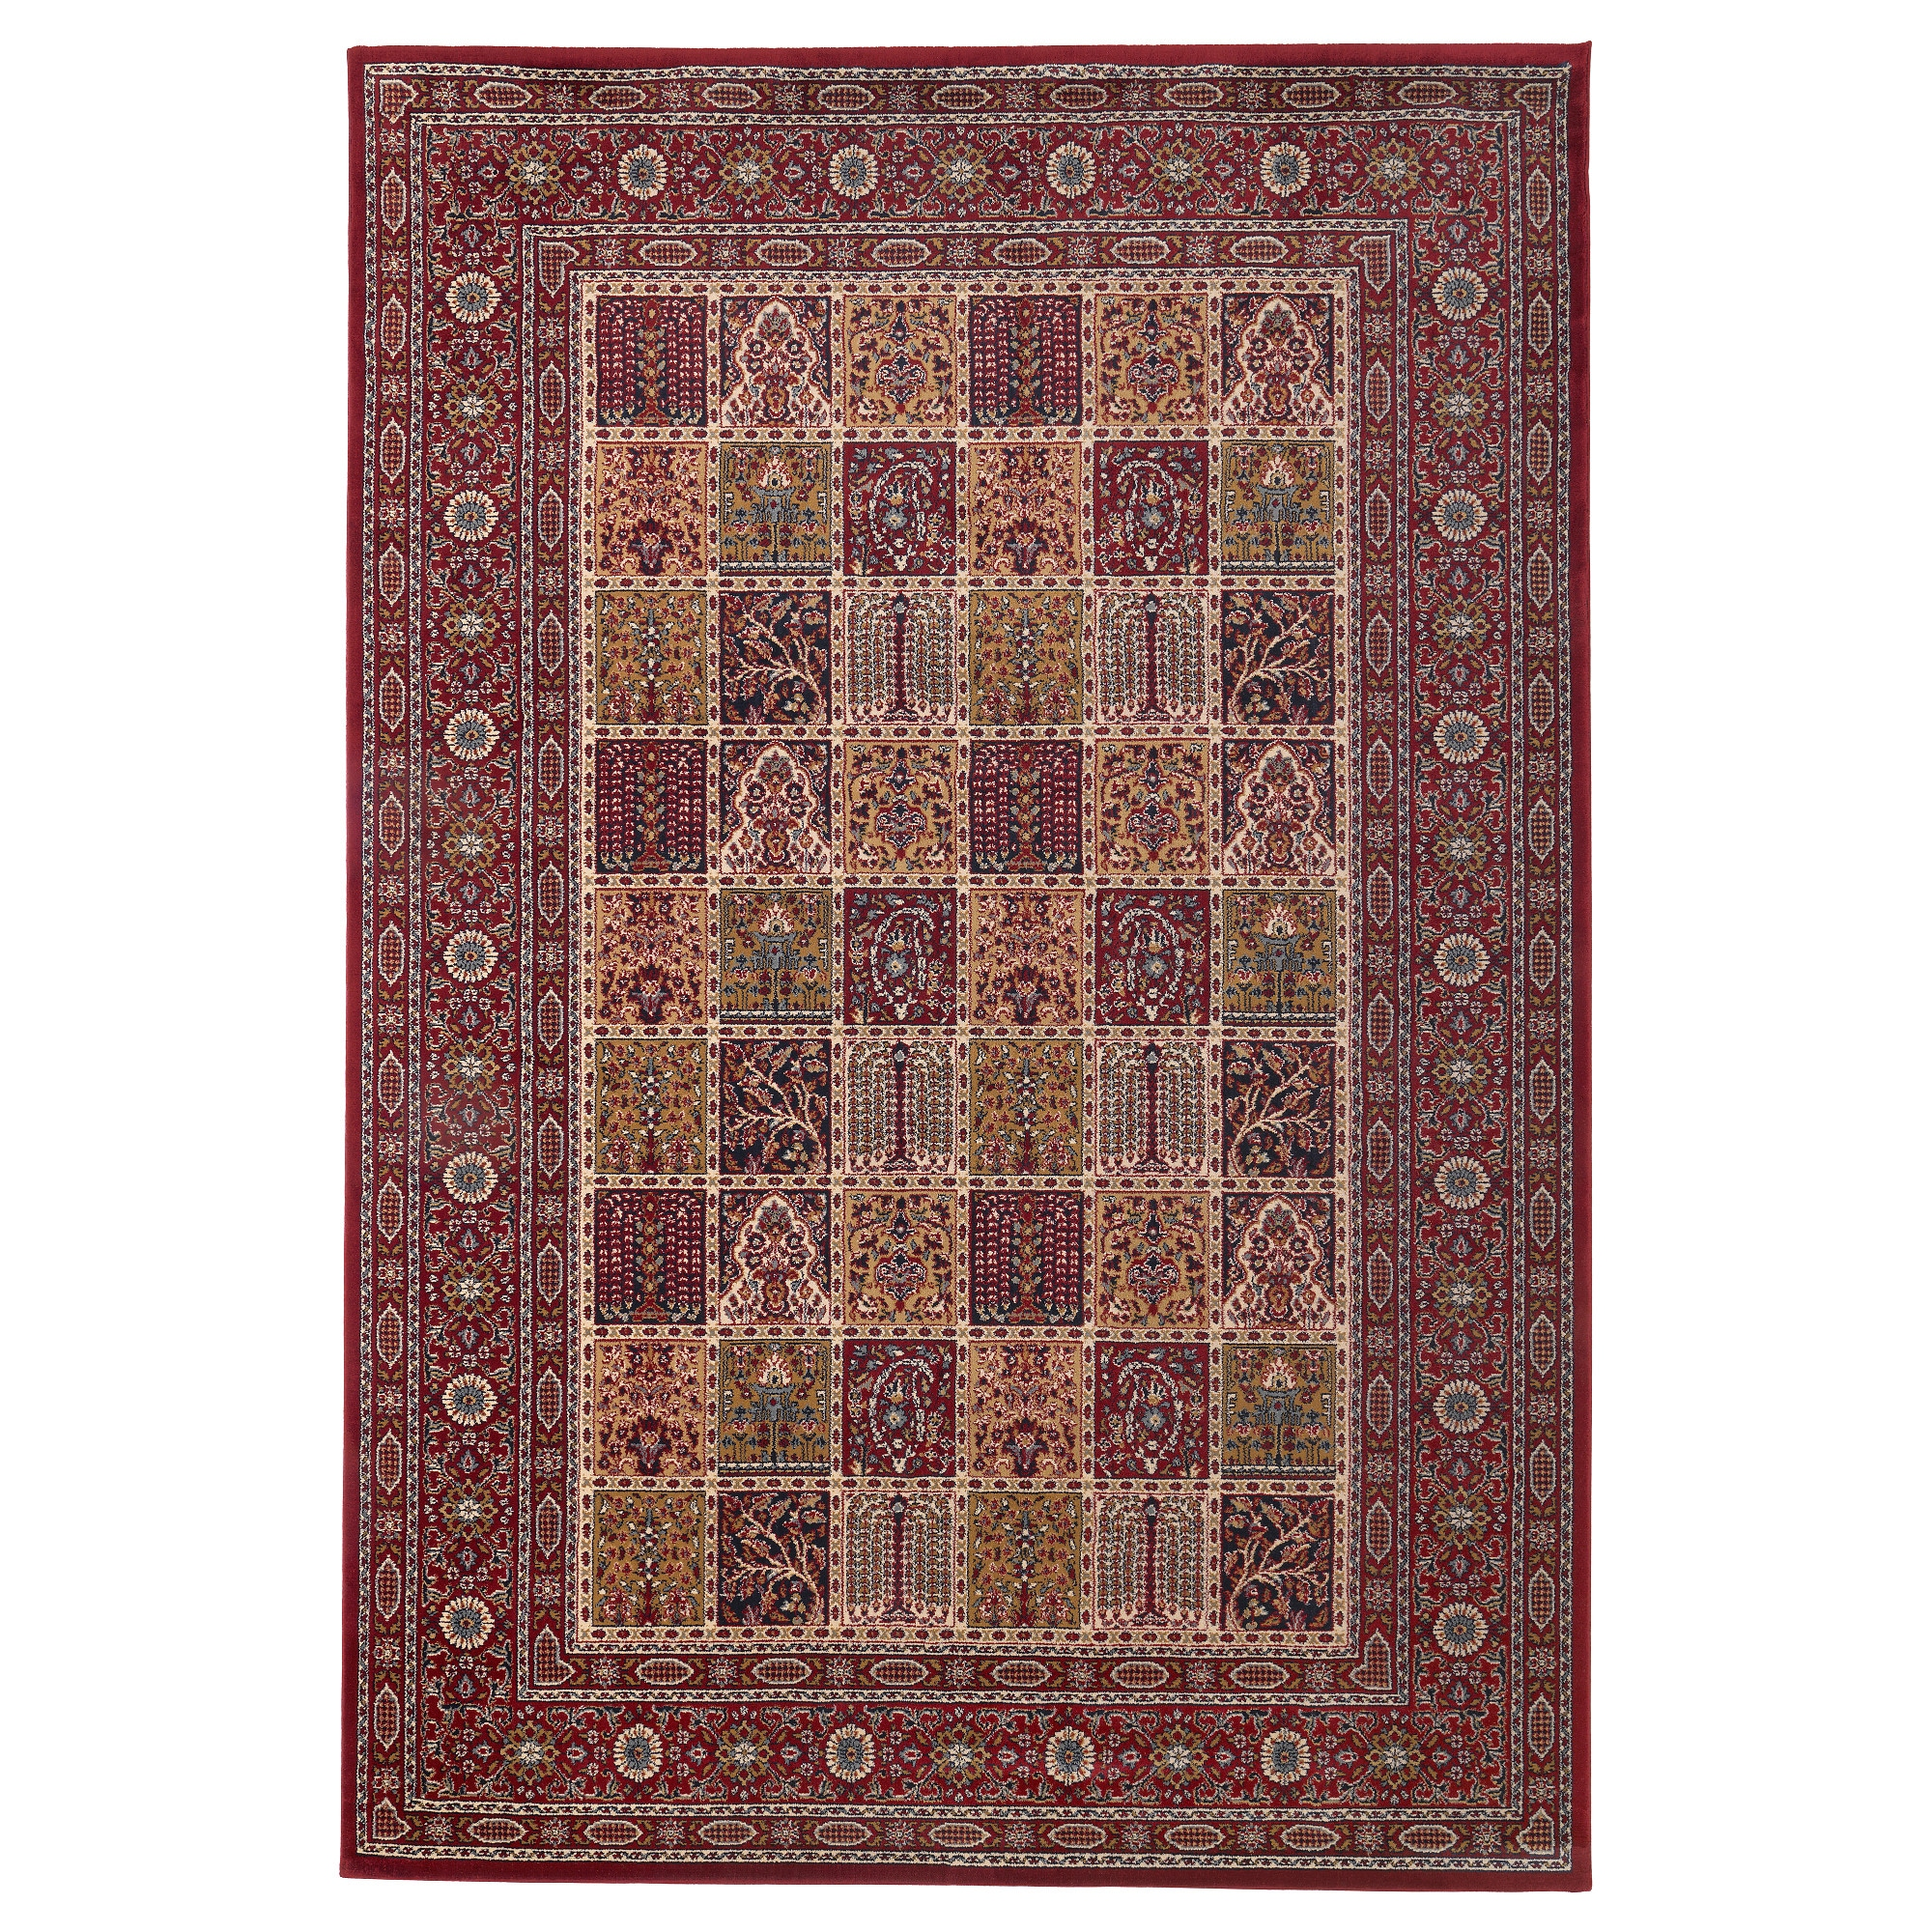 world img market tufted rugs caravan rug area wool thumb do zahra stores product